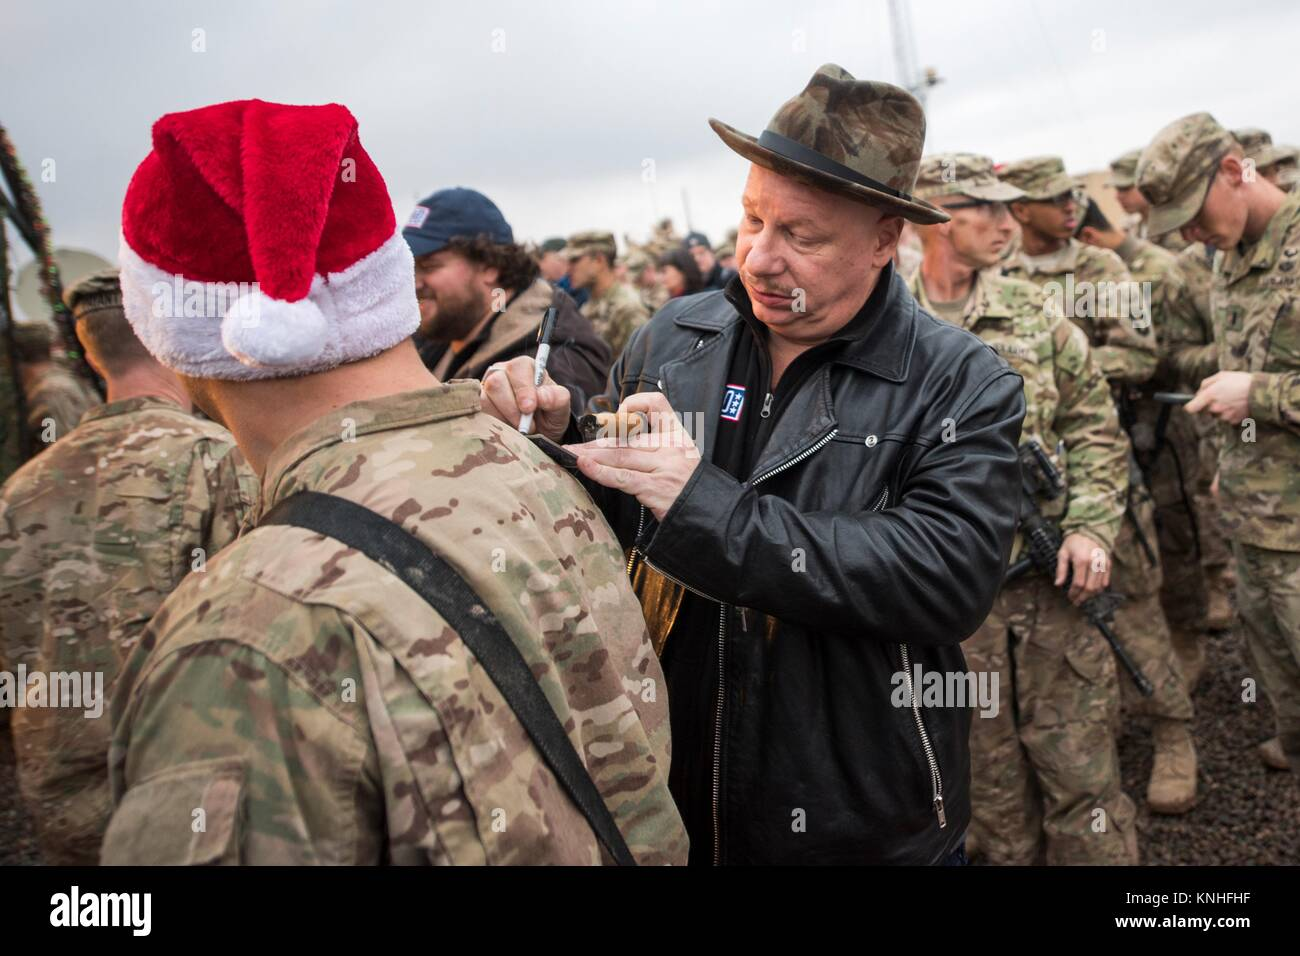 Roastmaster comedian Jeff Ross signs an autograph for a U.S. soldier during the CJCS USO Holiday Tour December 25, - Stock Image